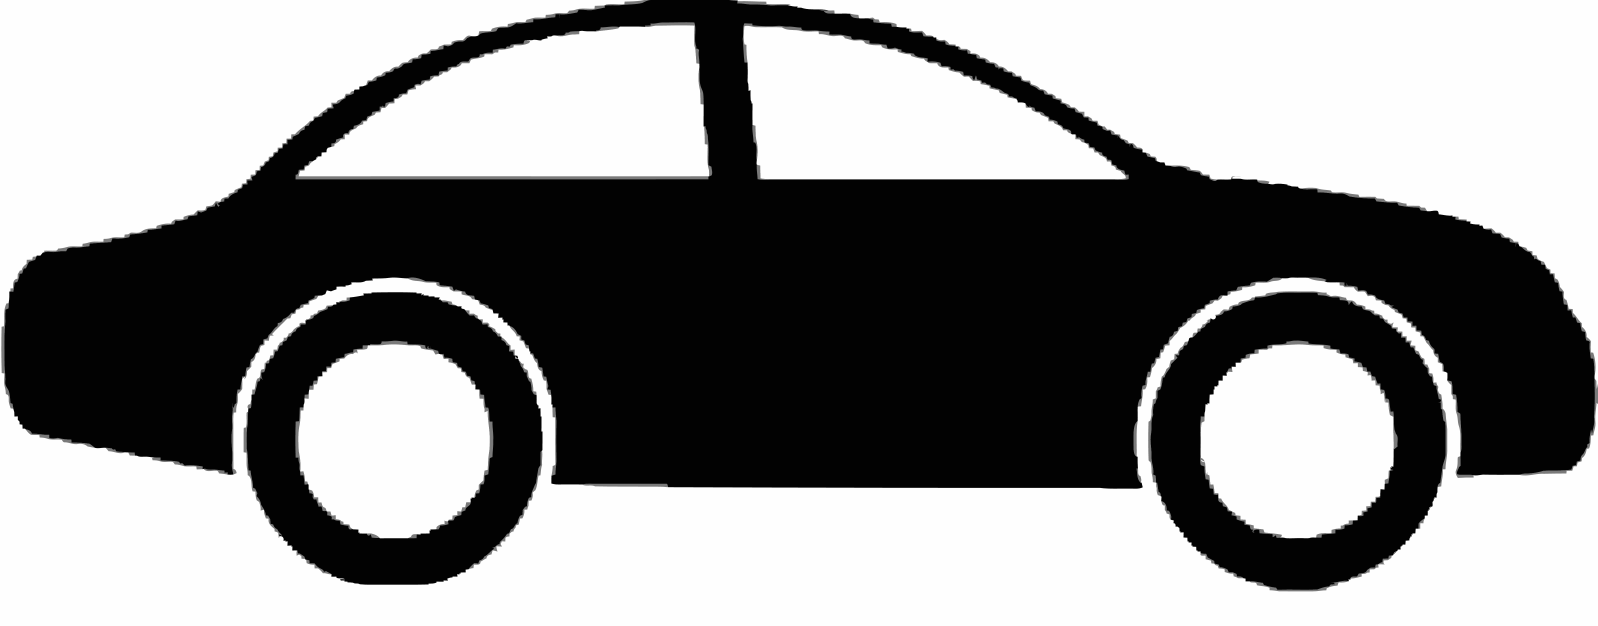 car v vectorized image   vector clip art online royalty free   cliparts co